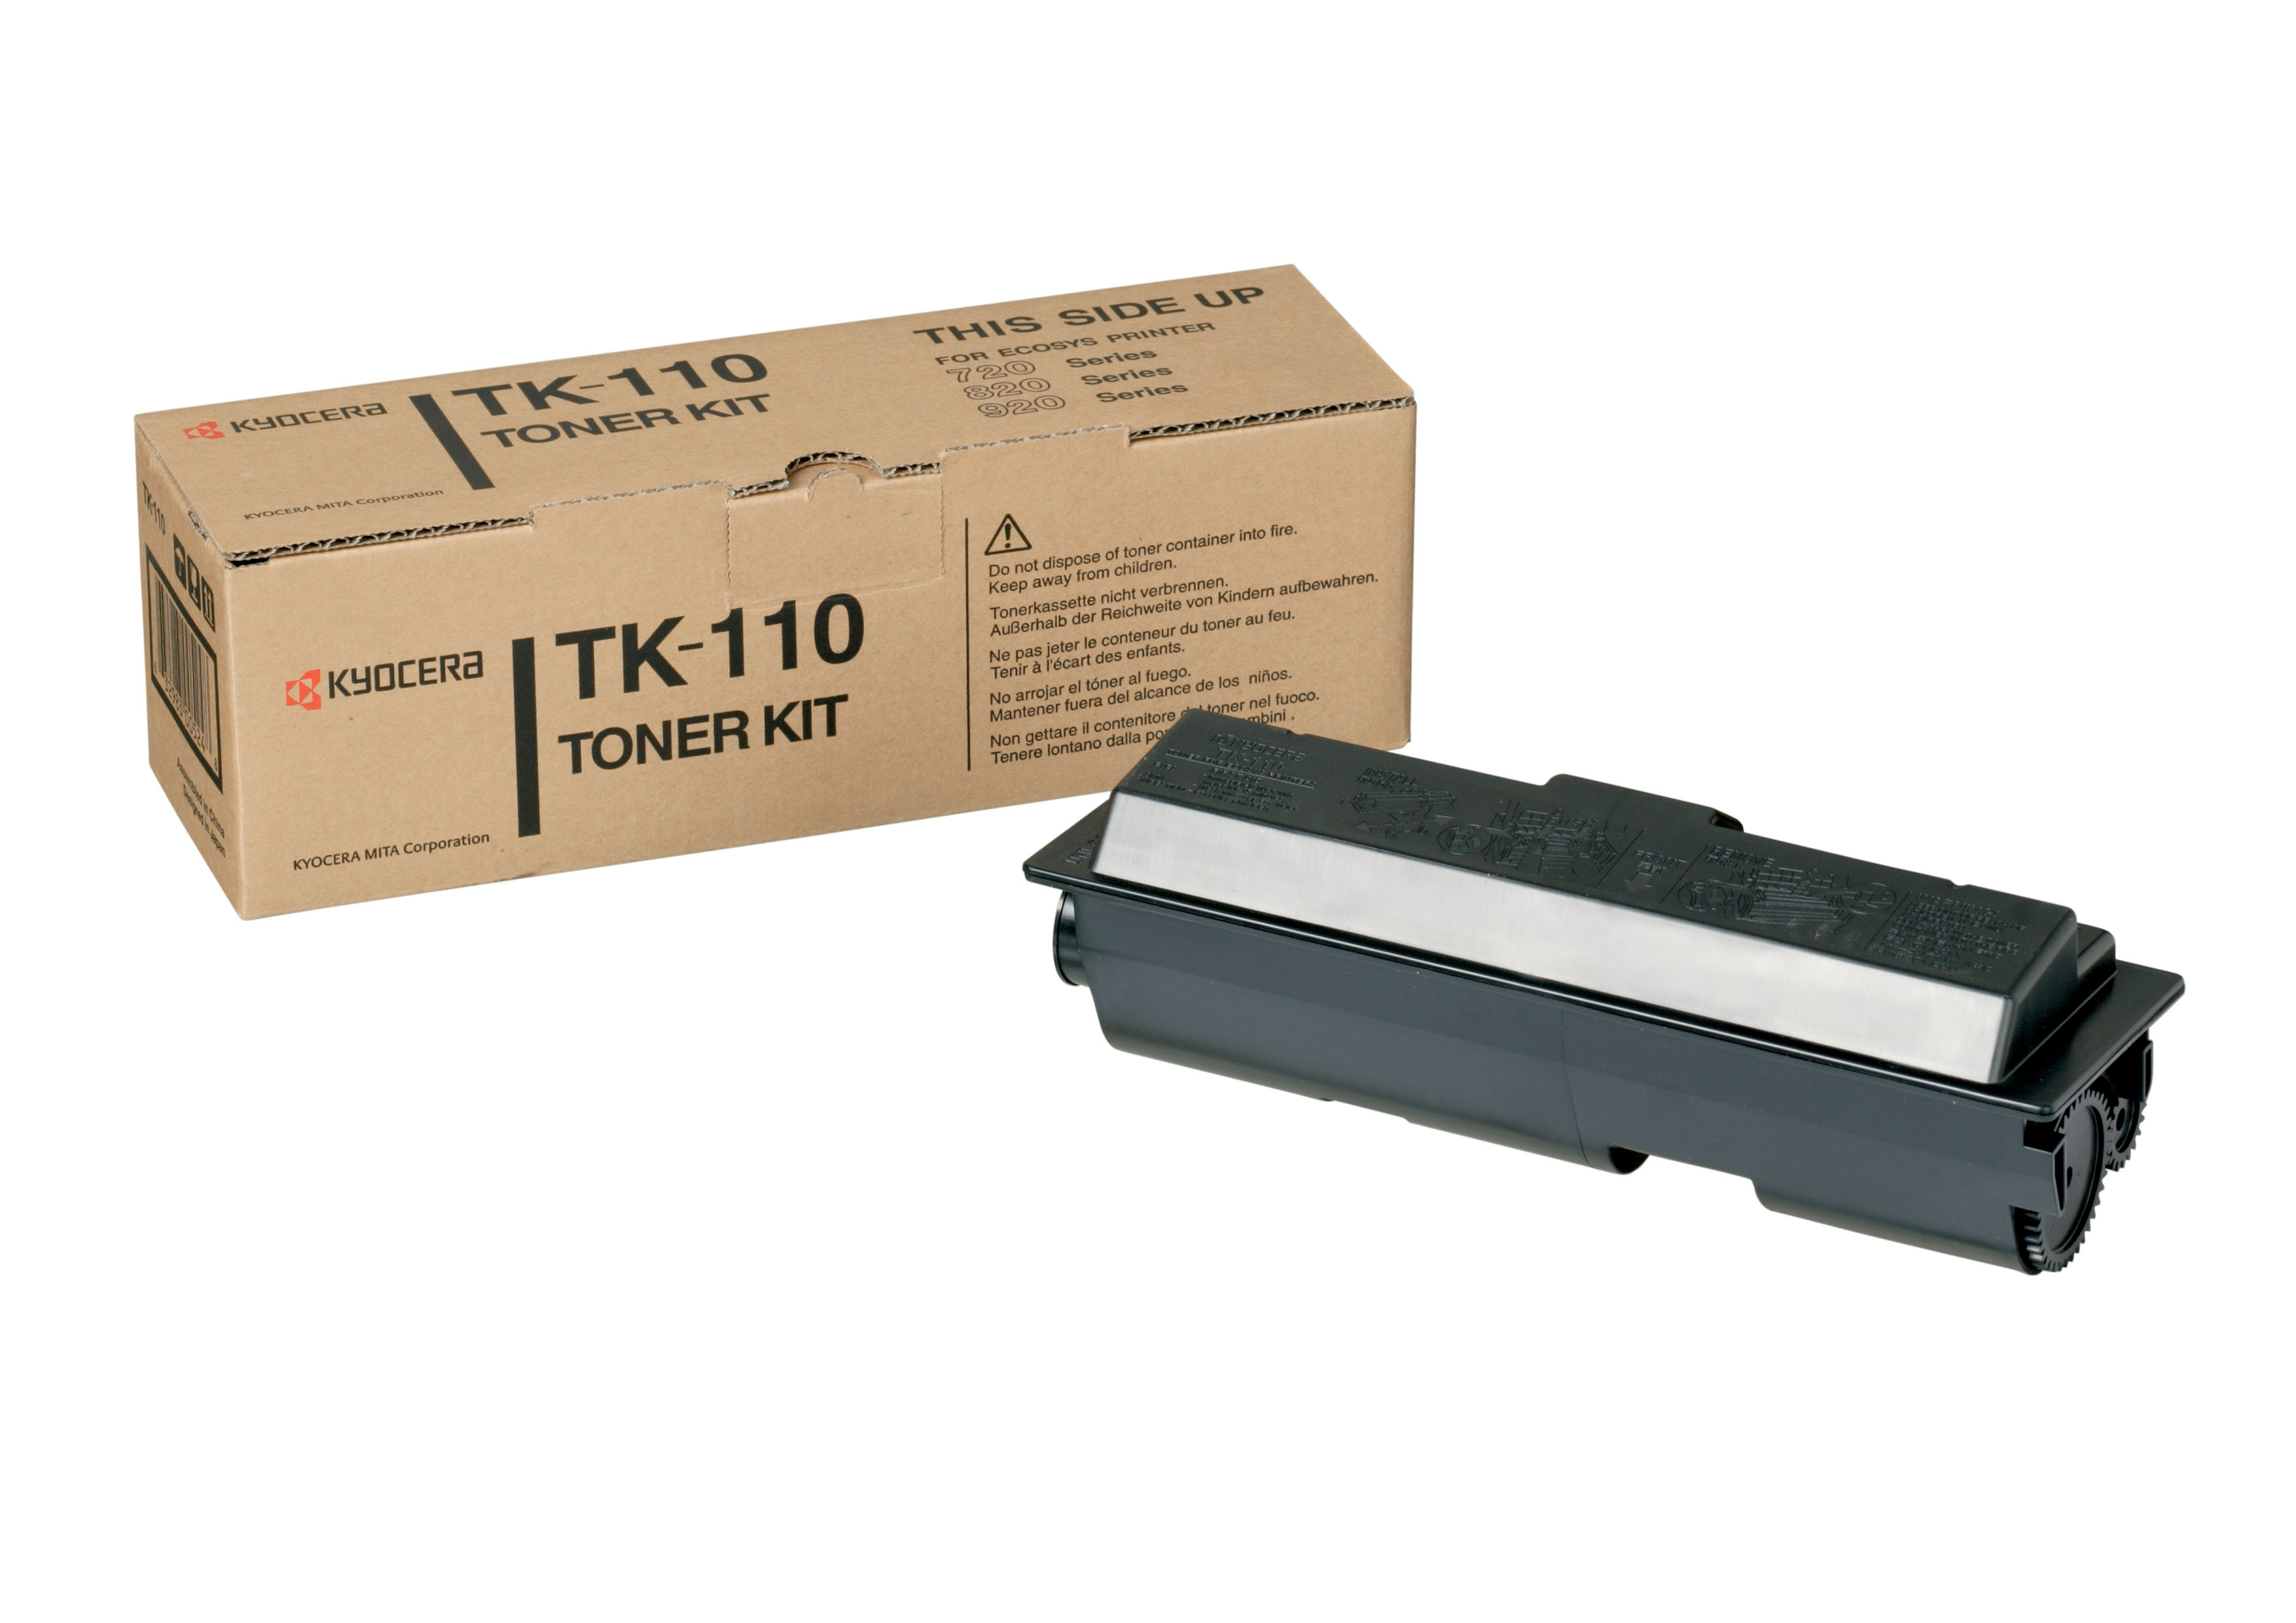 Remanufactured Kyocera Tk-110 Toner Cartridge Black TK-110 - rem01